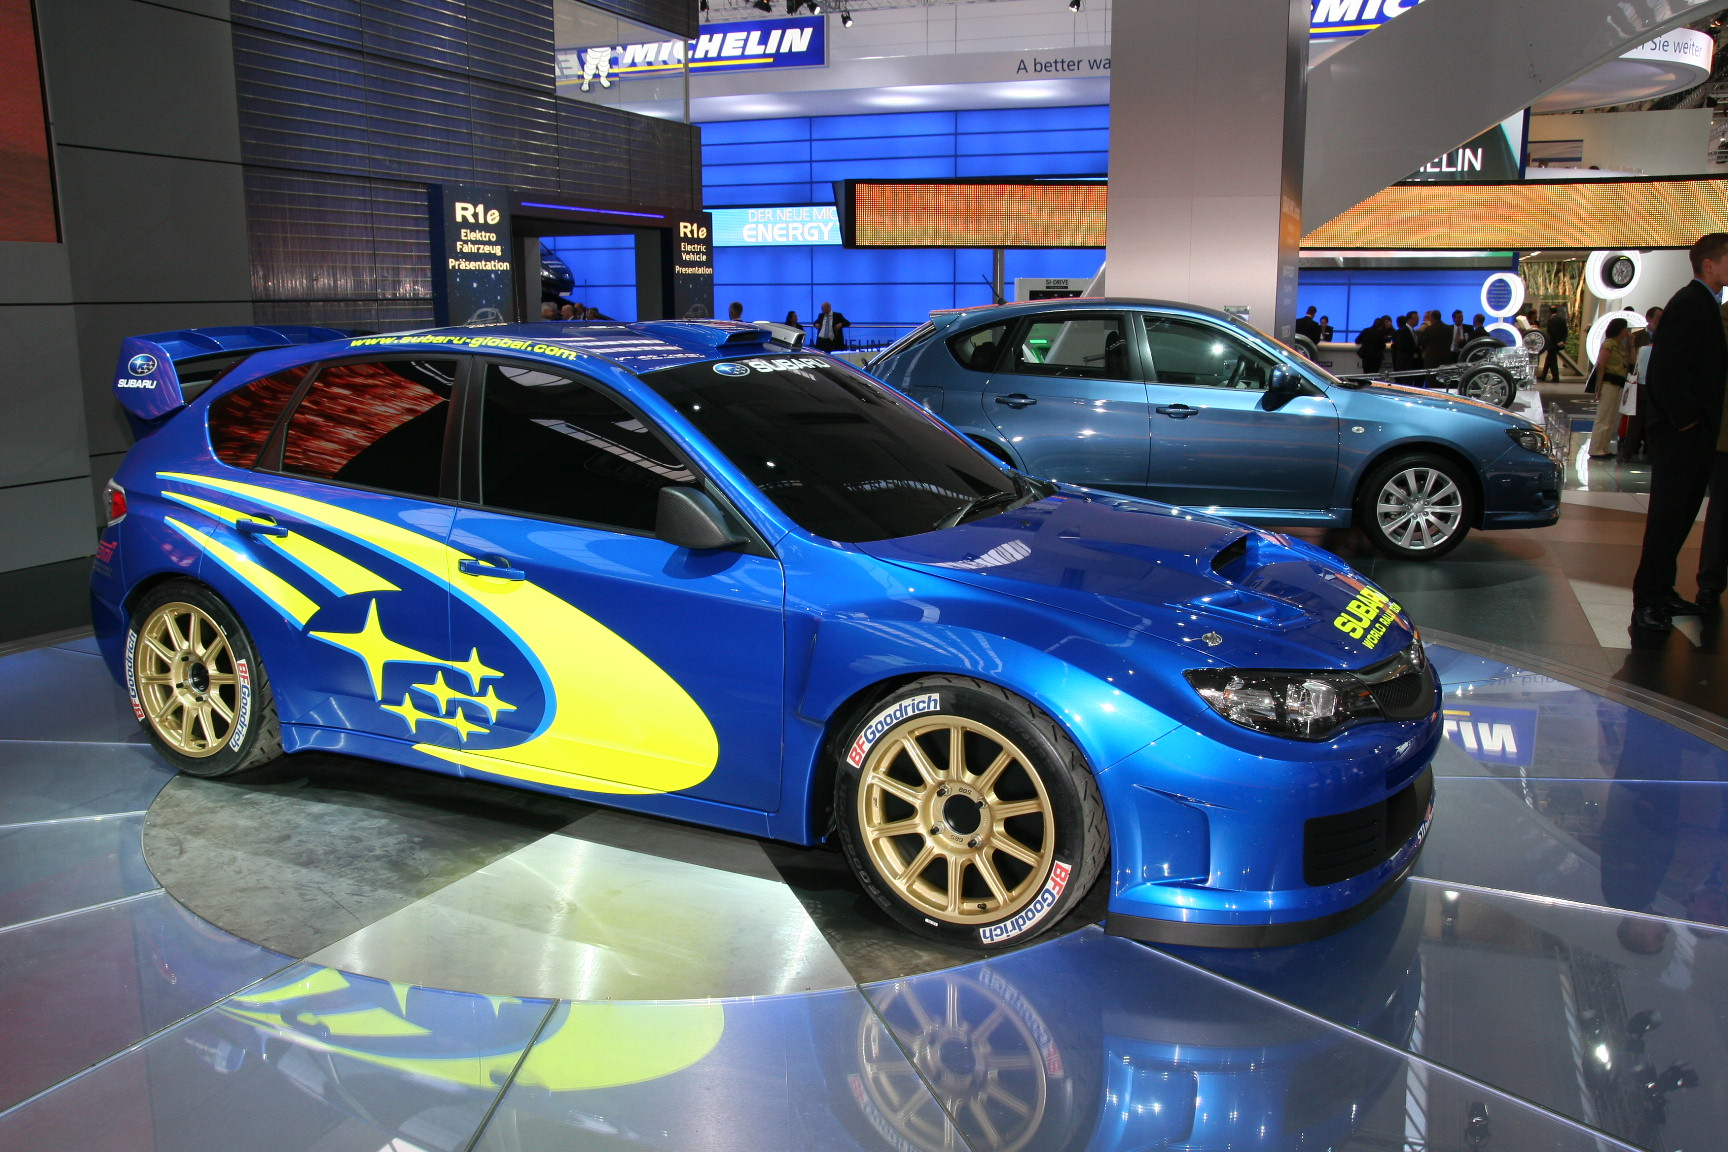 en direct de francfort la subaru wrc concept face l 39 impreza. Black Bedroom Furniture Sets. Home Design Ideas